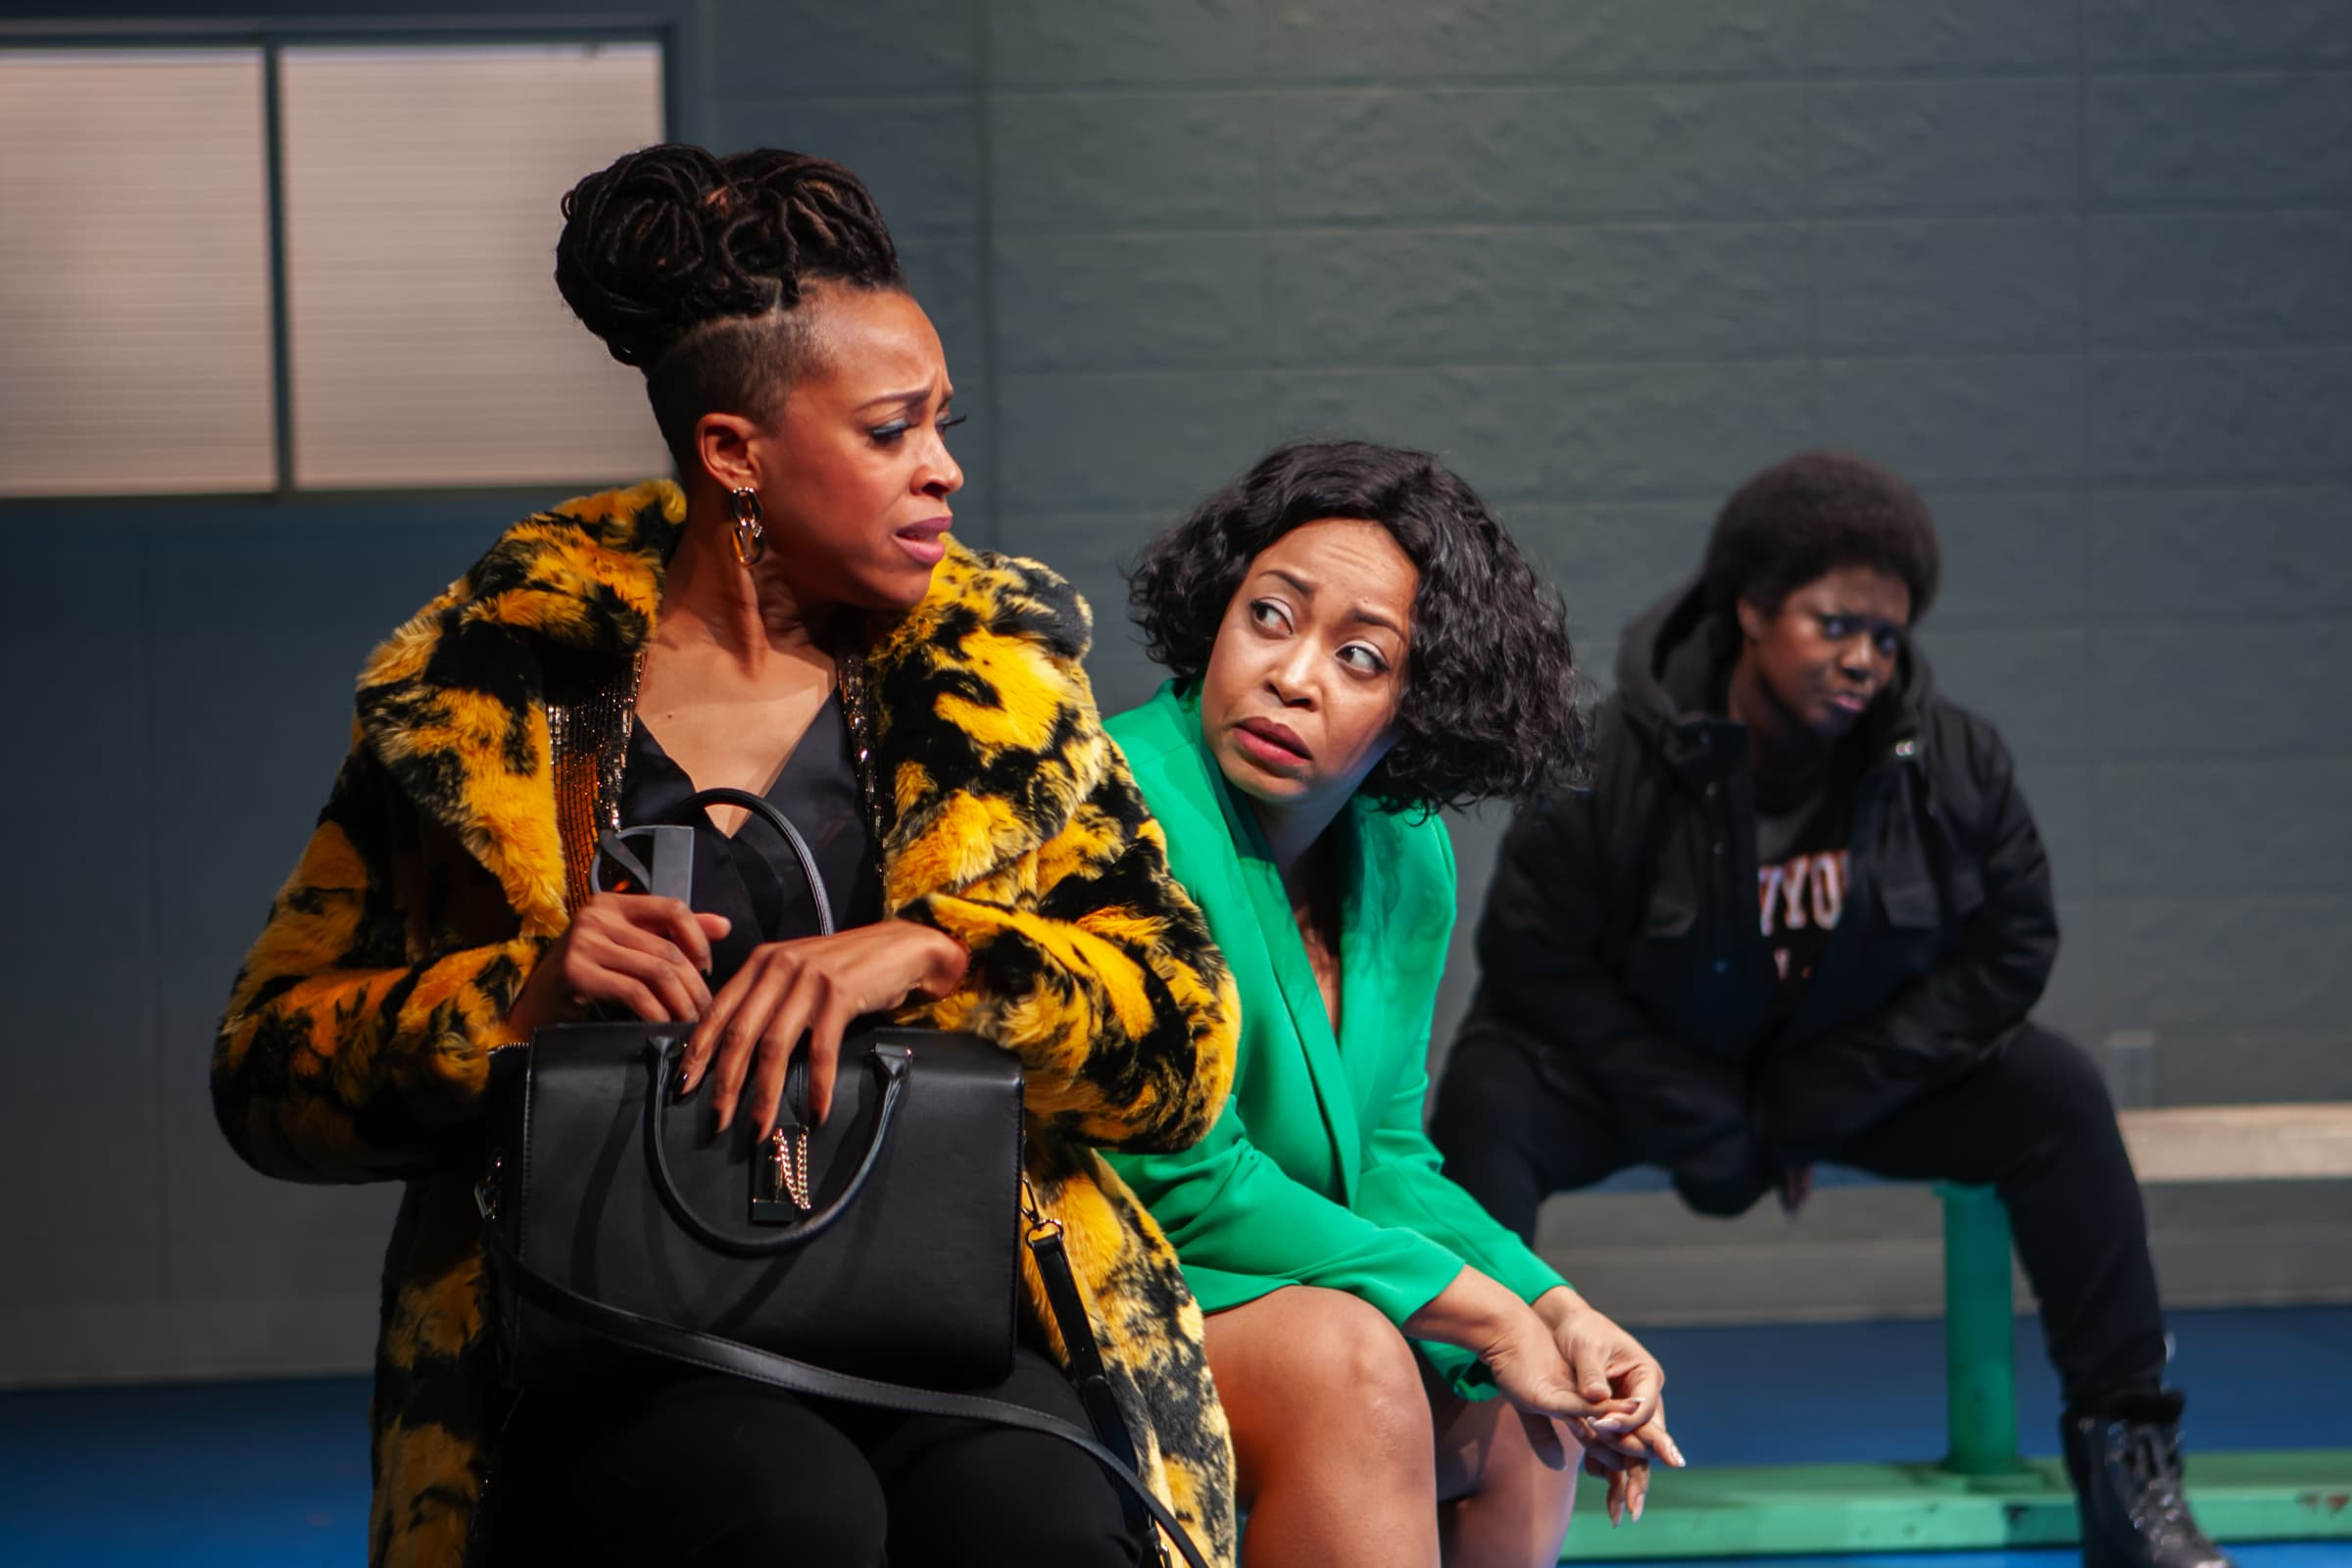 Cherise Boothe, Nikiya Mathis, and Heather Alicia Simms in <i>Fabulation, or The Re-Education of Undine</i> by Lynn Nottage and directed by Lileana Blain-Cruz. (Photo: Monique Carboni)